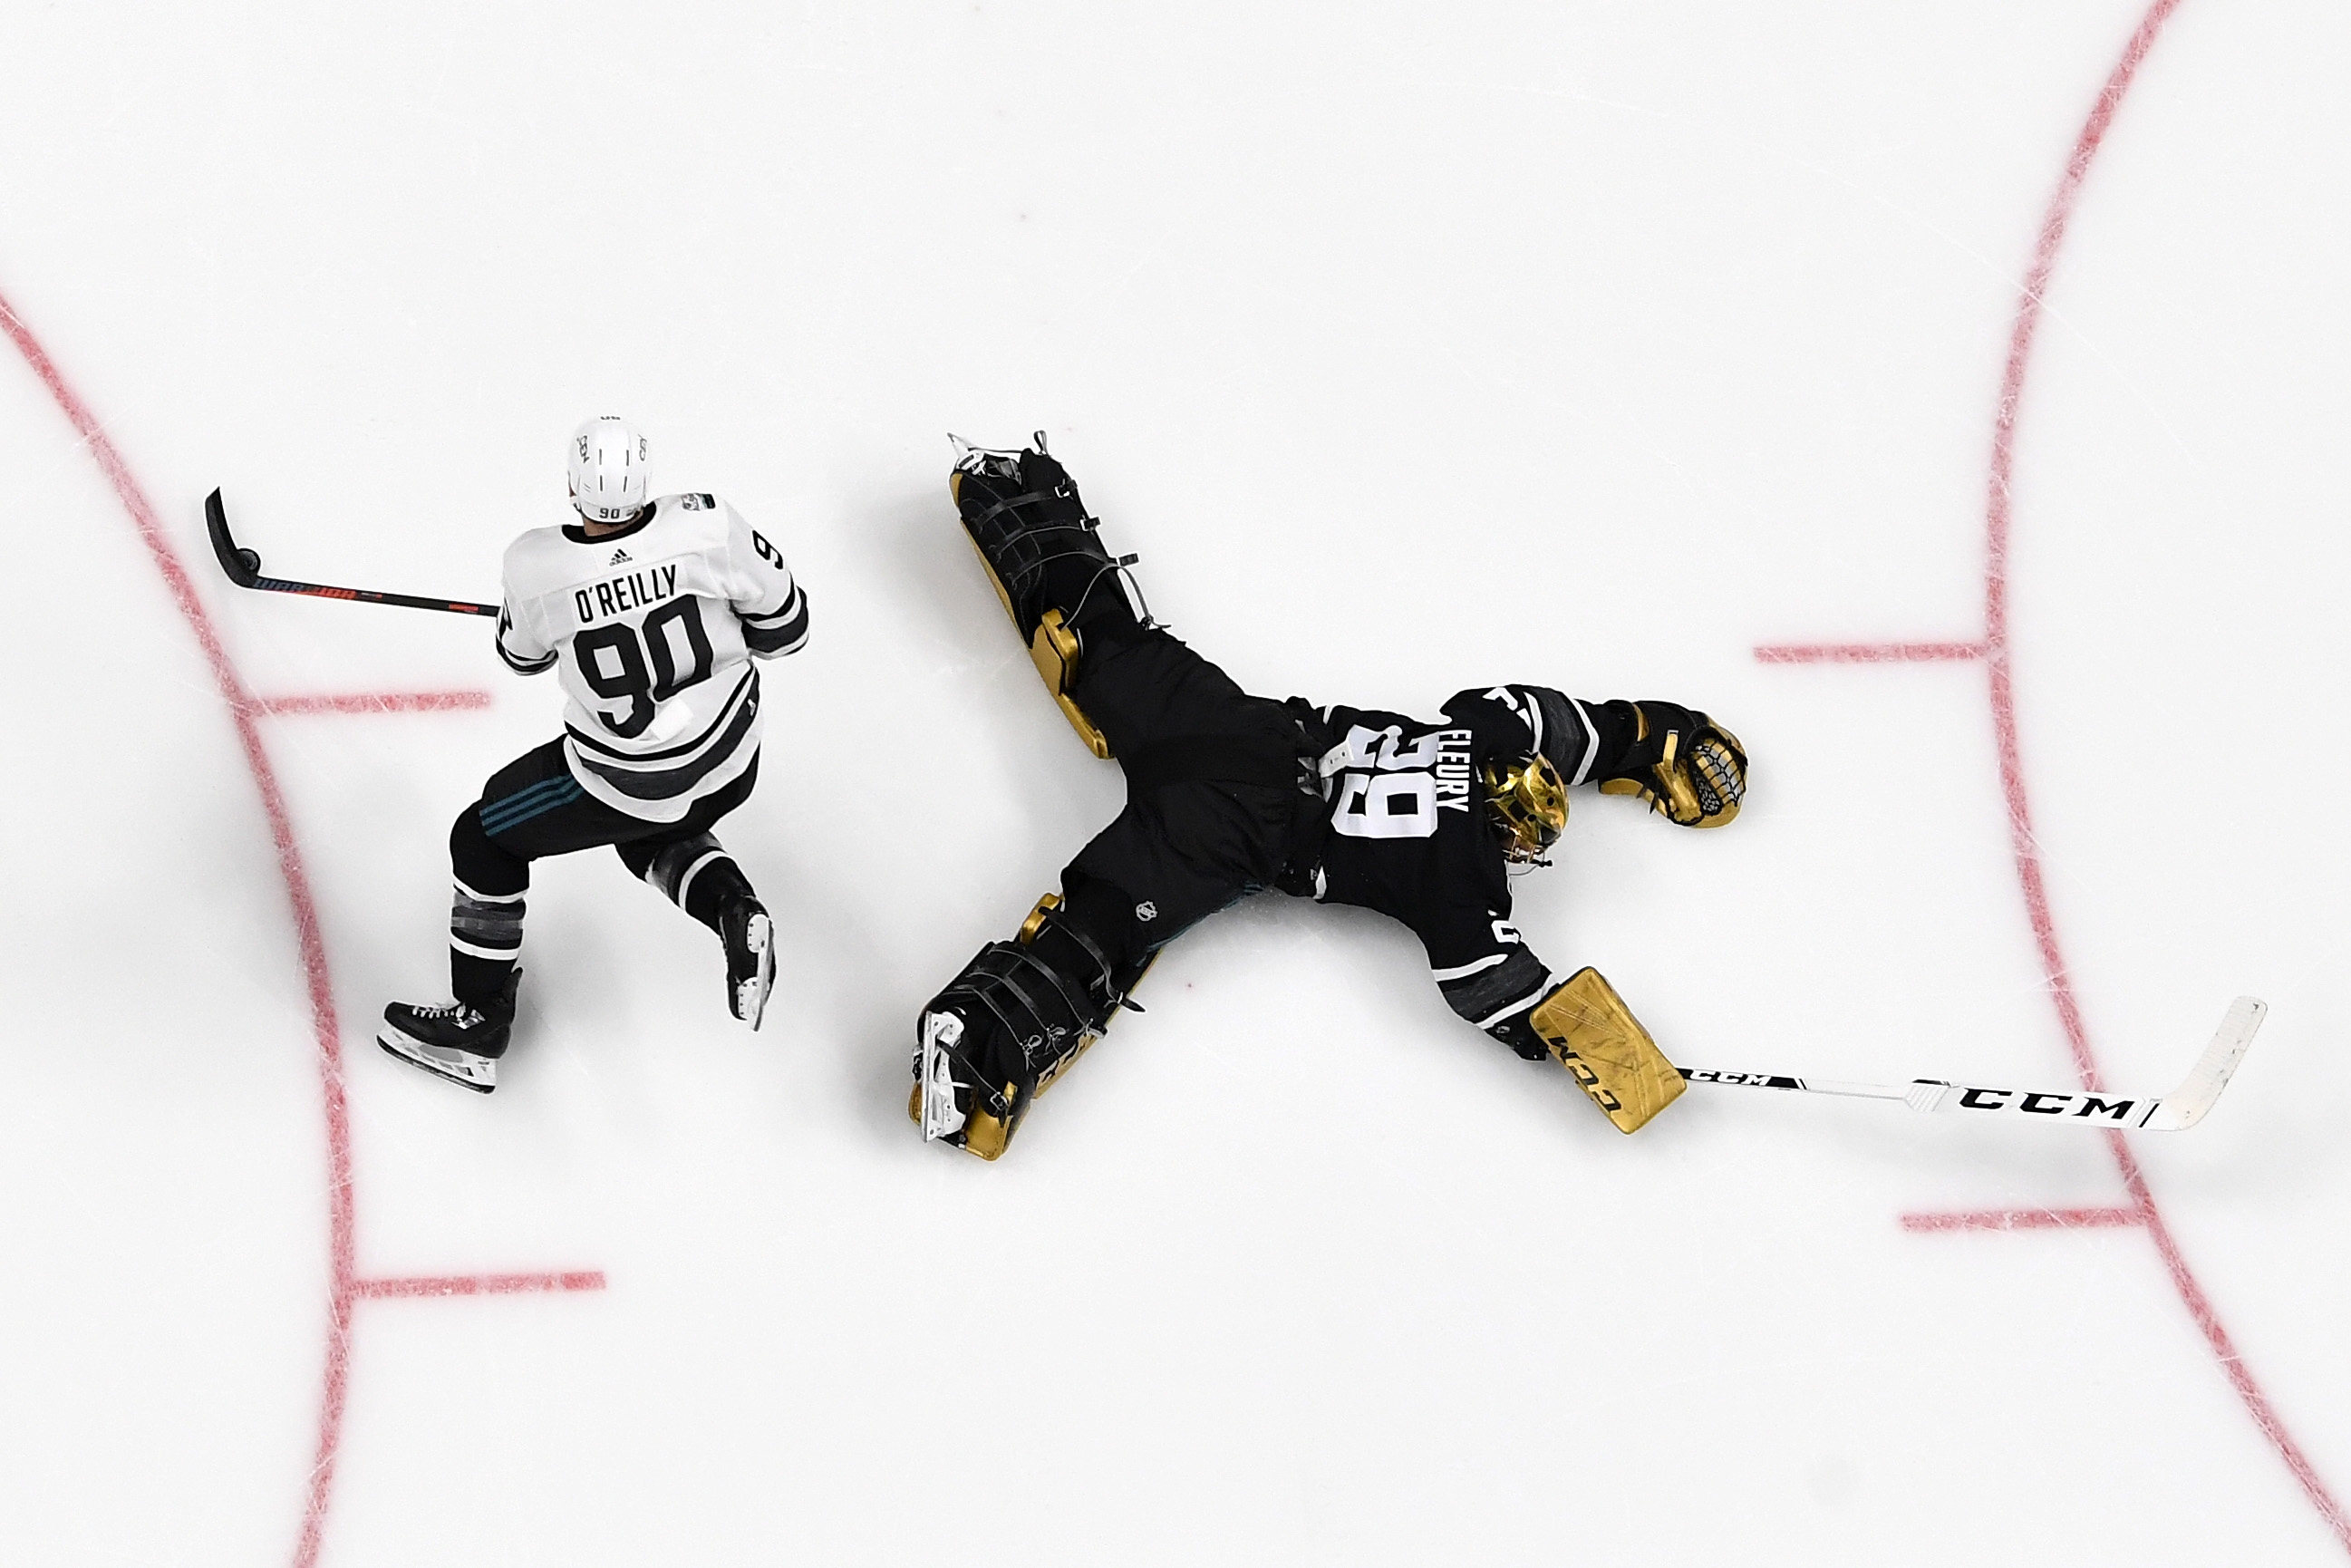 SAN JOSE, CA - JANUARY 26: Ryan O'Reilly #90 of the St. Louis Blues skates around Marc-Andre Fleury #29 of the Vegas Golden Knights for a goal during the 2019 Honda NHL All-Star Game at SAP Center on January 26, 2019 in San Jose, California.